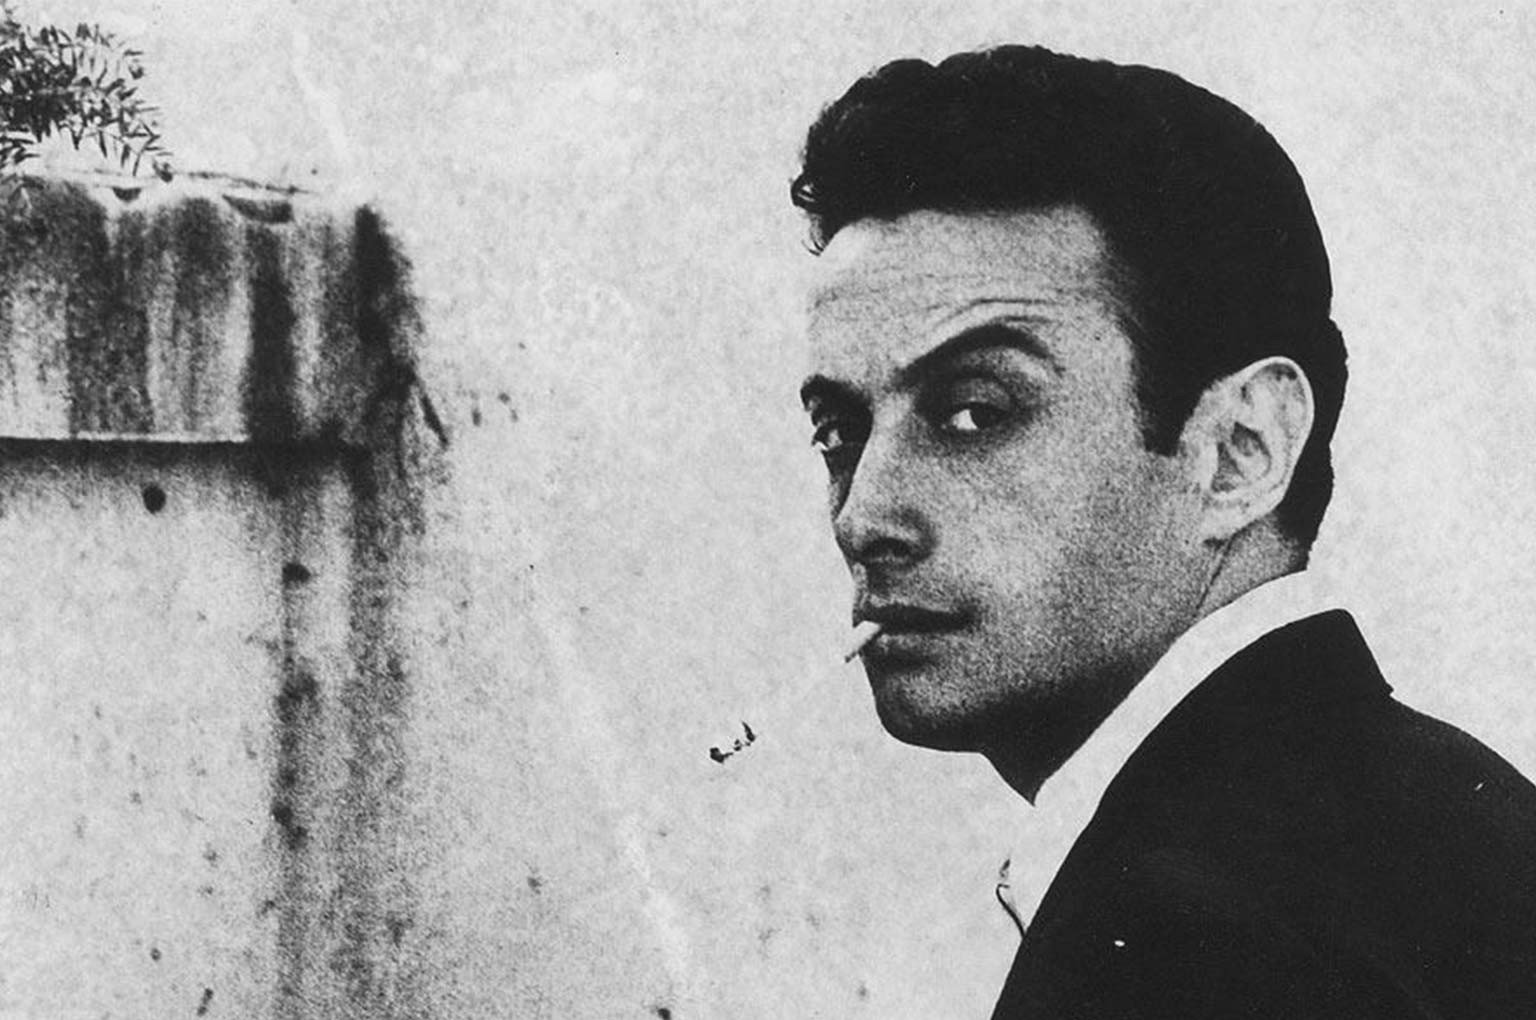 Courtesy of the Lenny Bruce Memorial Foundation.